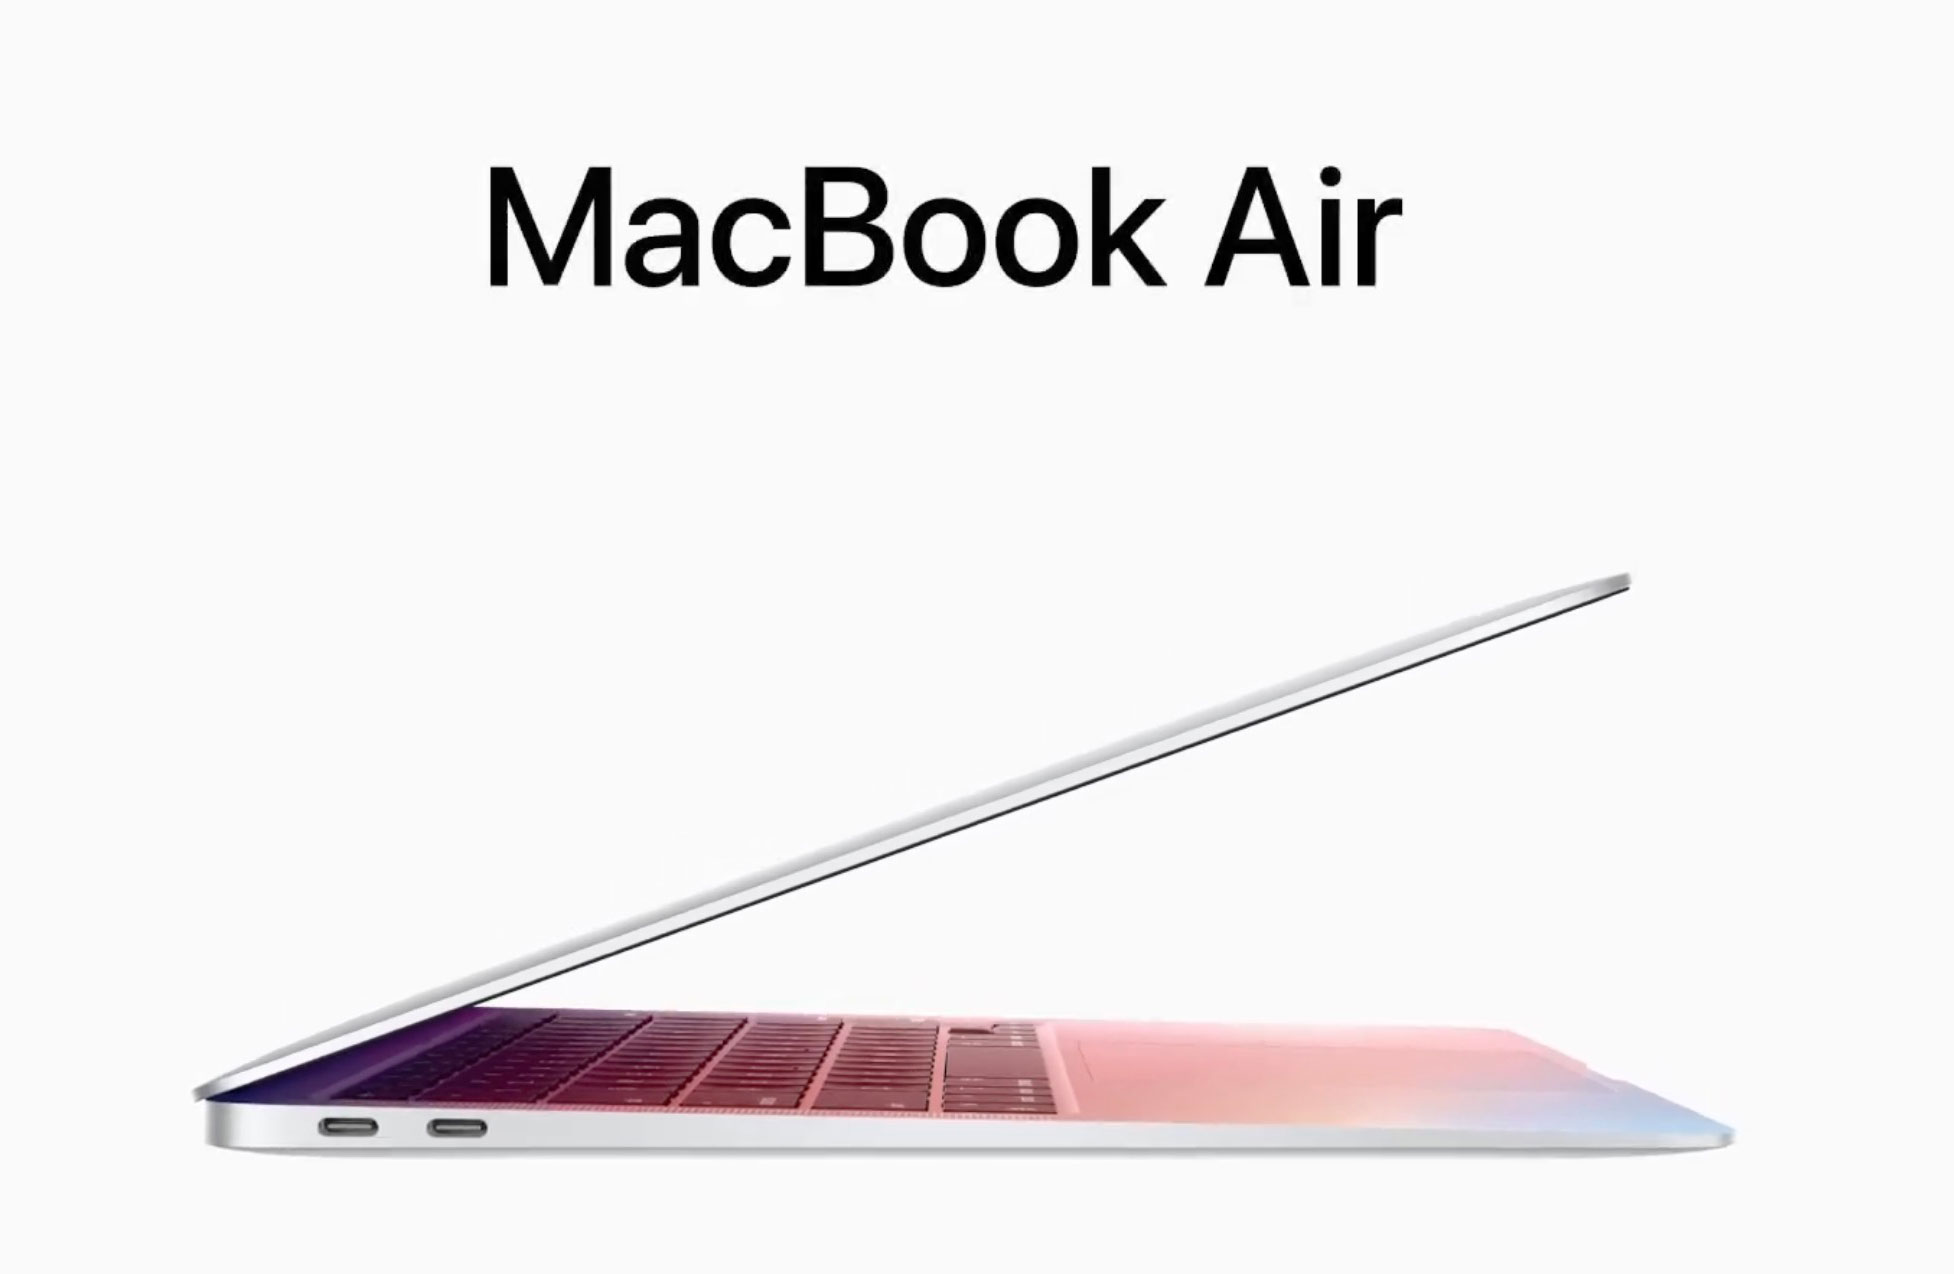 Le nouveau MacBook Air